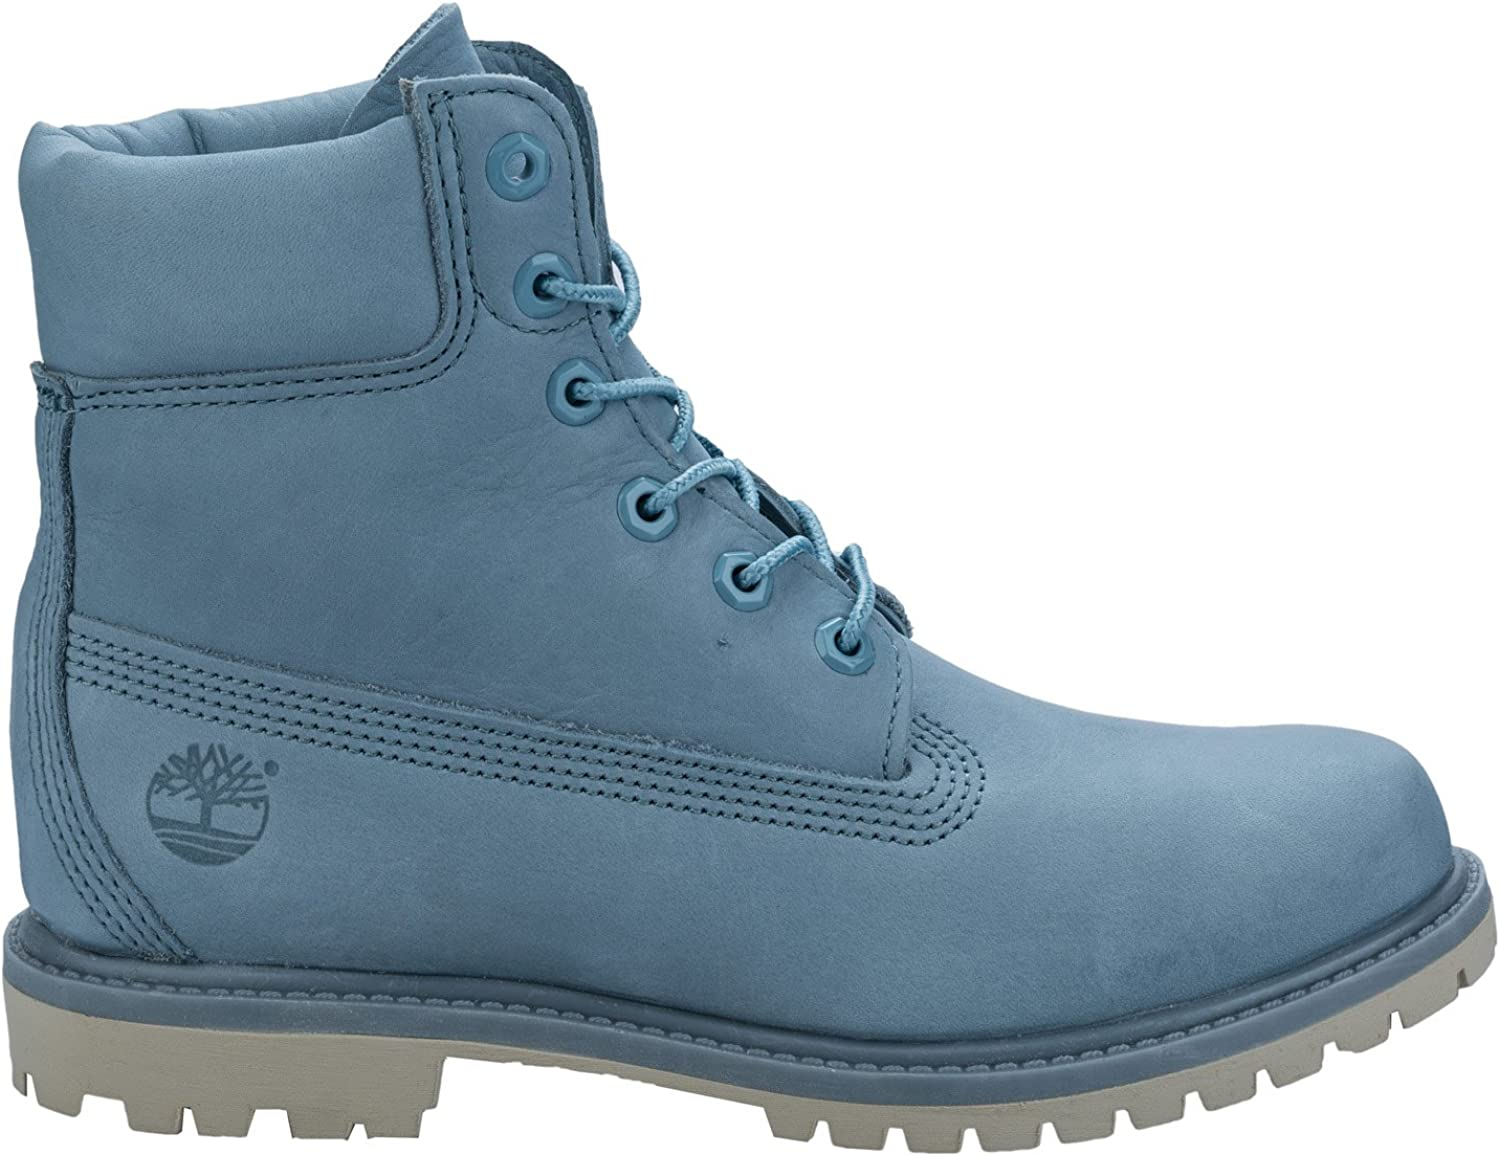 Timberland 6in Premium Boot W STONE BLUE, WOMAN, Size